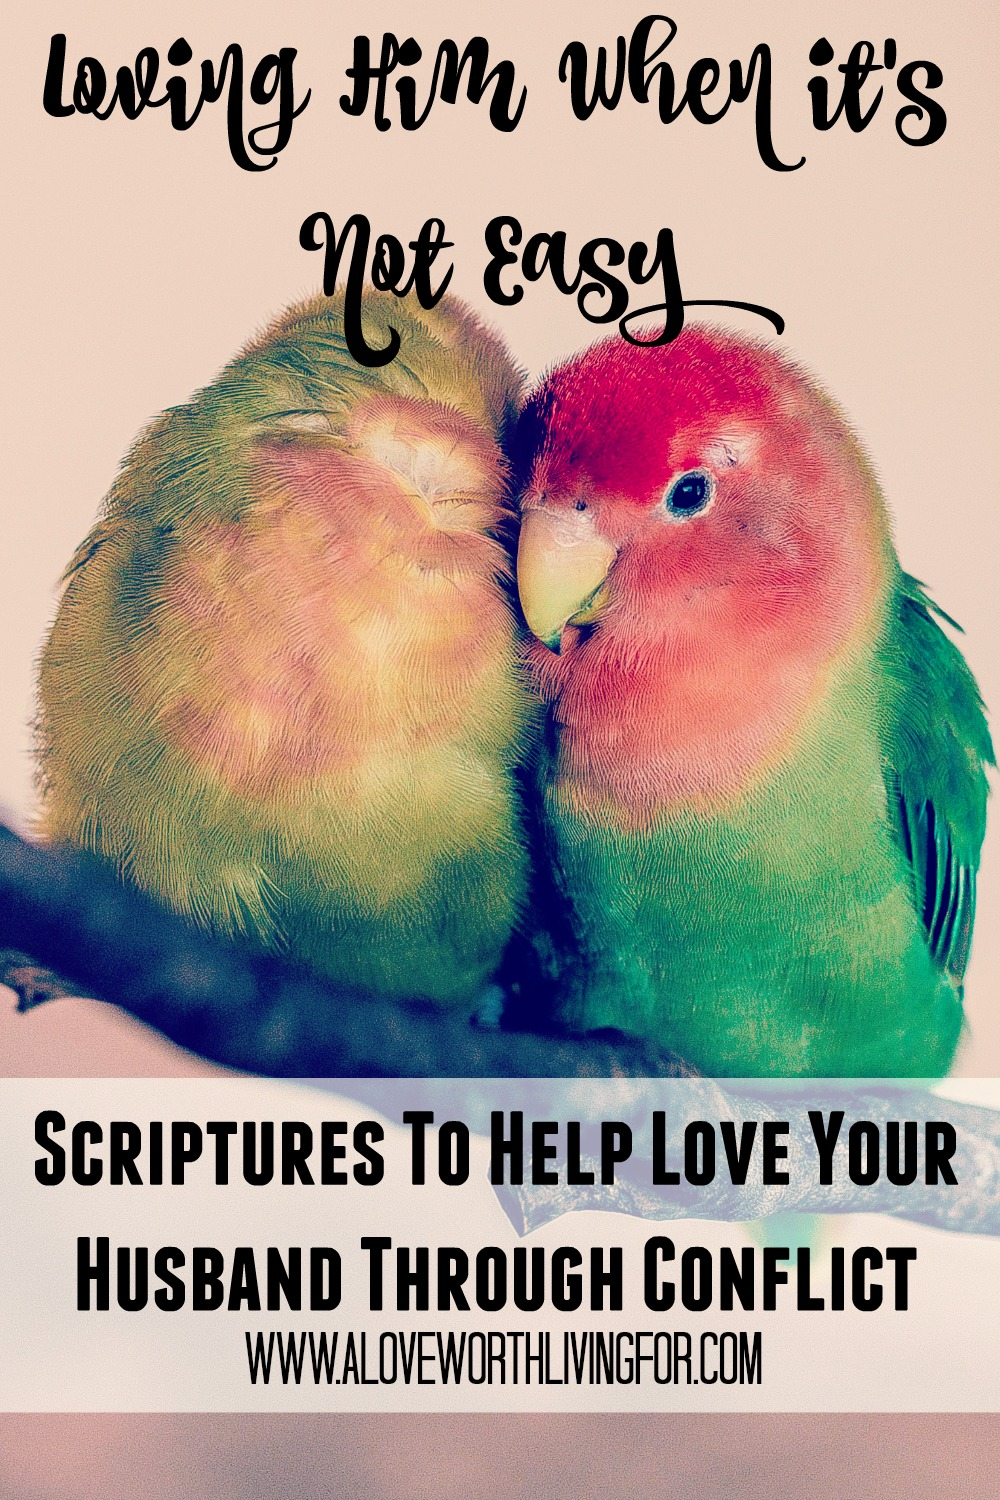 We all want marriages that are happy, healthy and that bring glory to God. We love our spouses but sometimes it is very difficult. These scriptures will help you love him even in his unloveable moments.